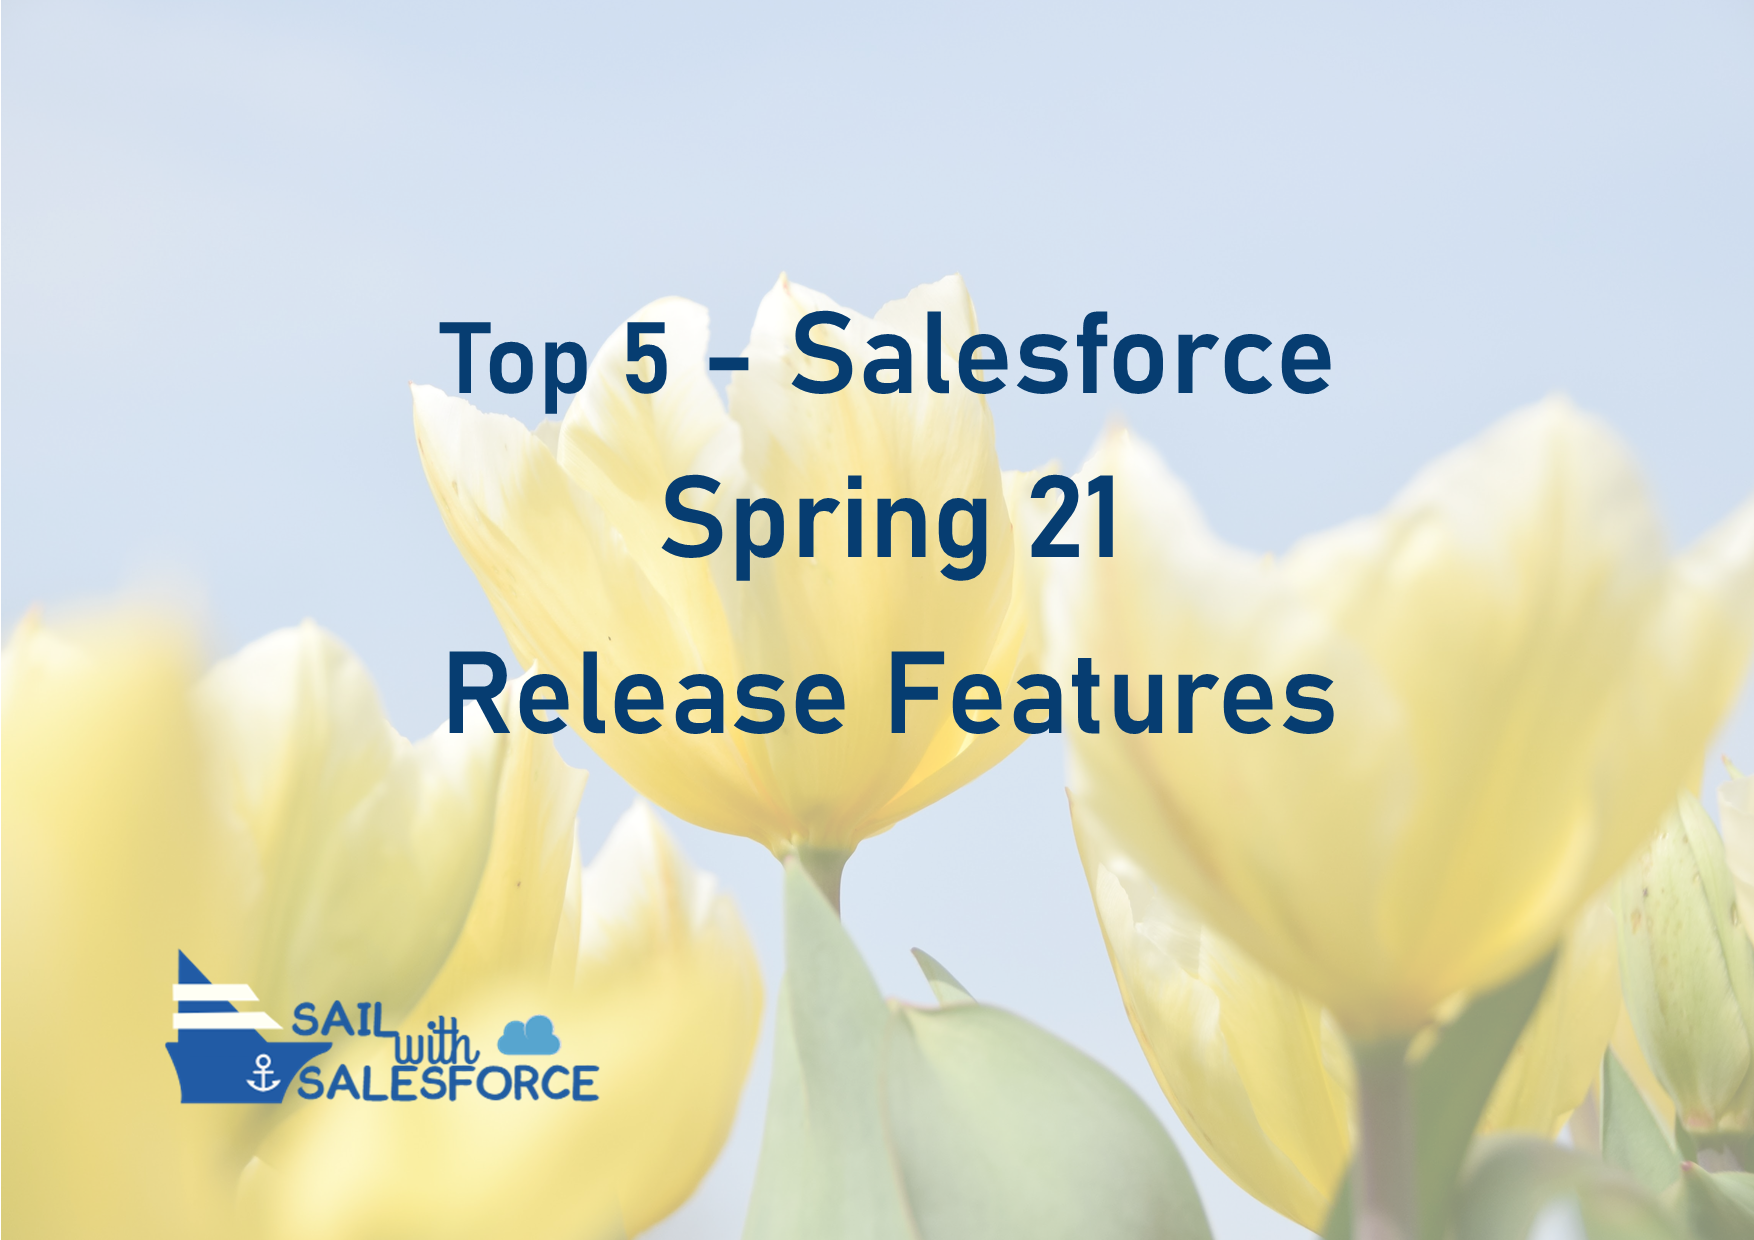 Top 5 Salesforce Spring Release